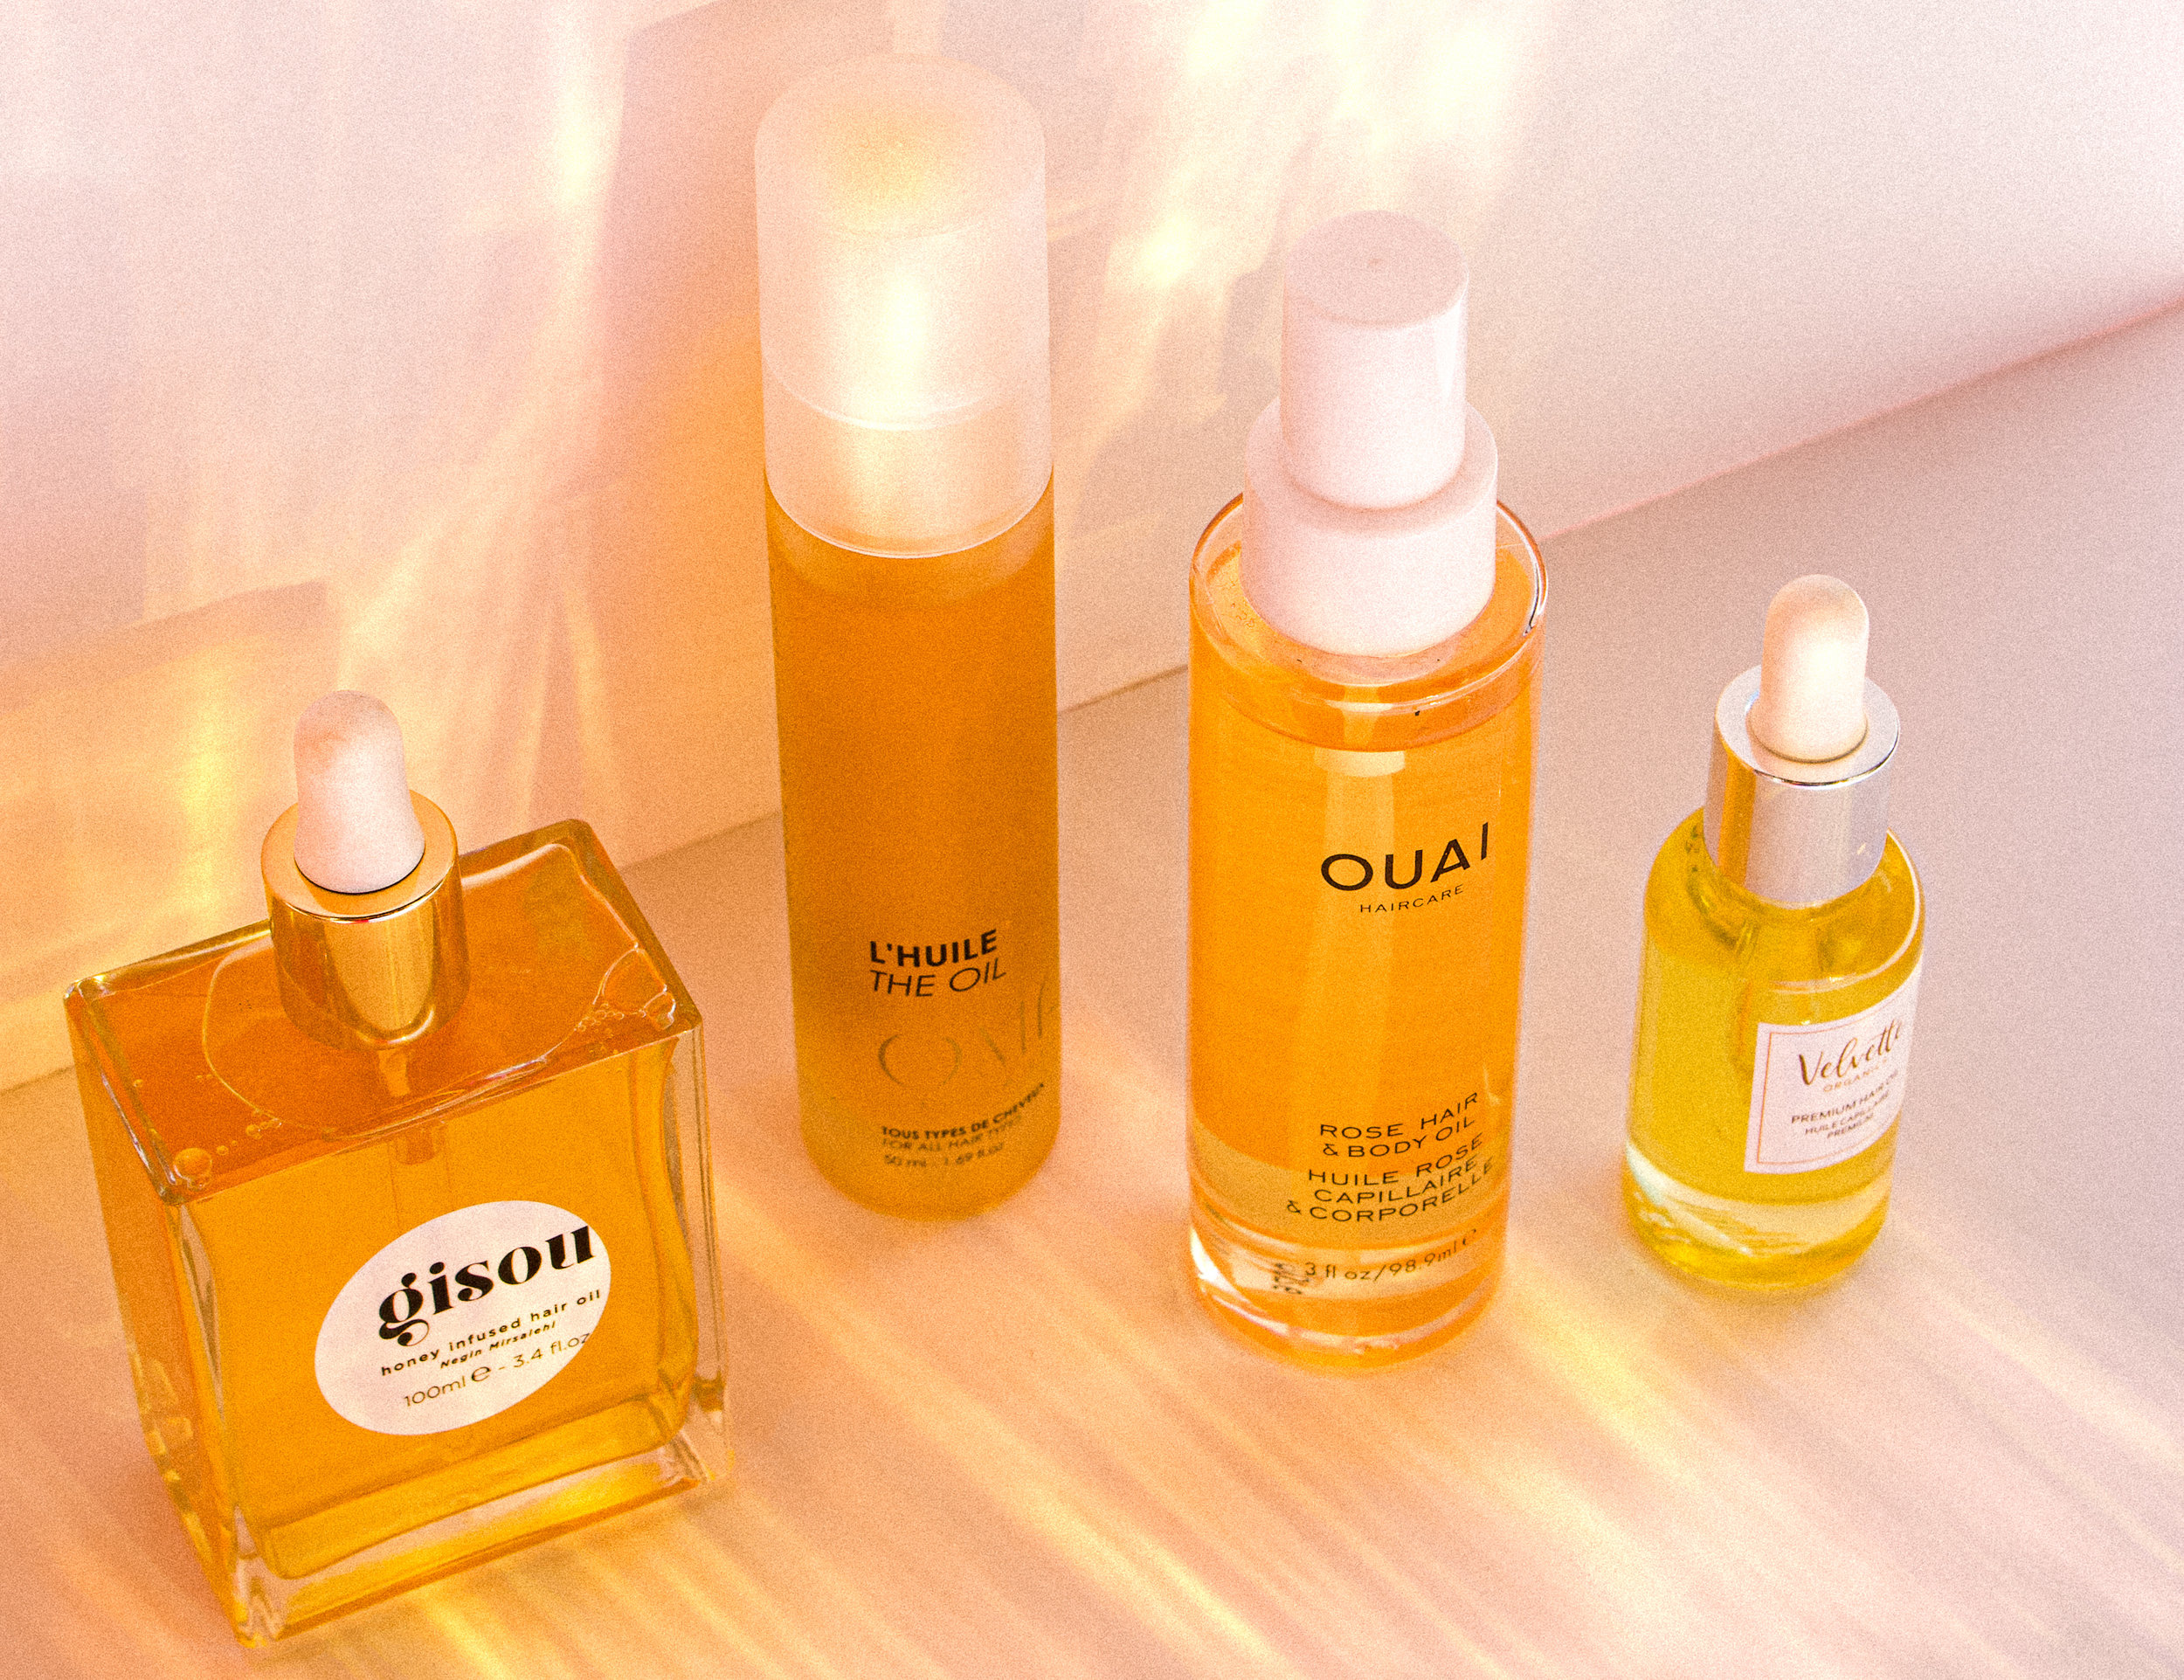 the best 4 hair oils for all hair types - The ticket to moisture rich hair and constant shine.